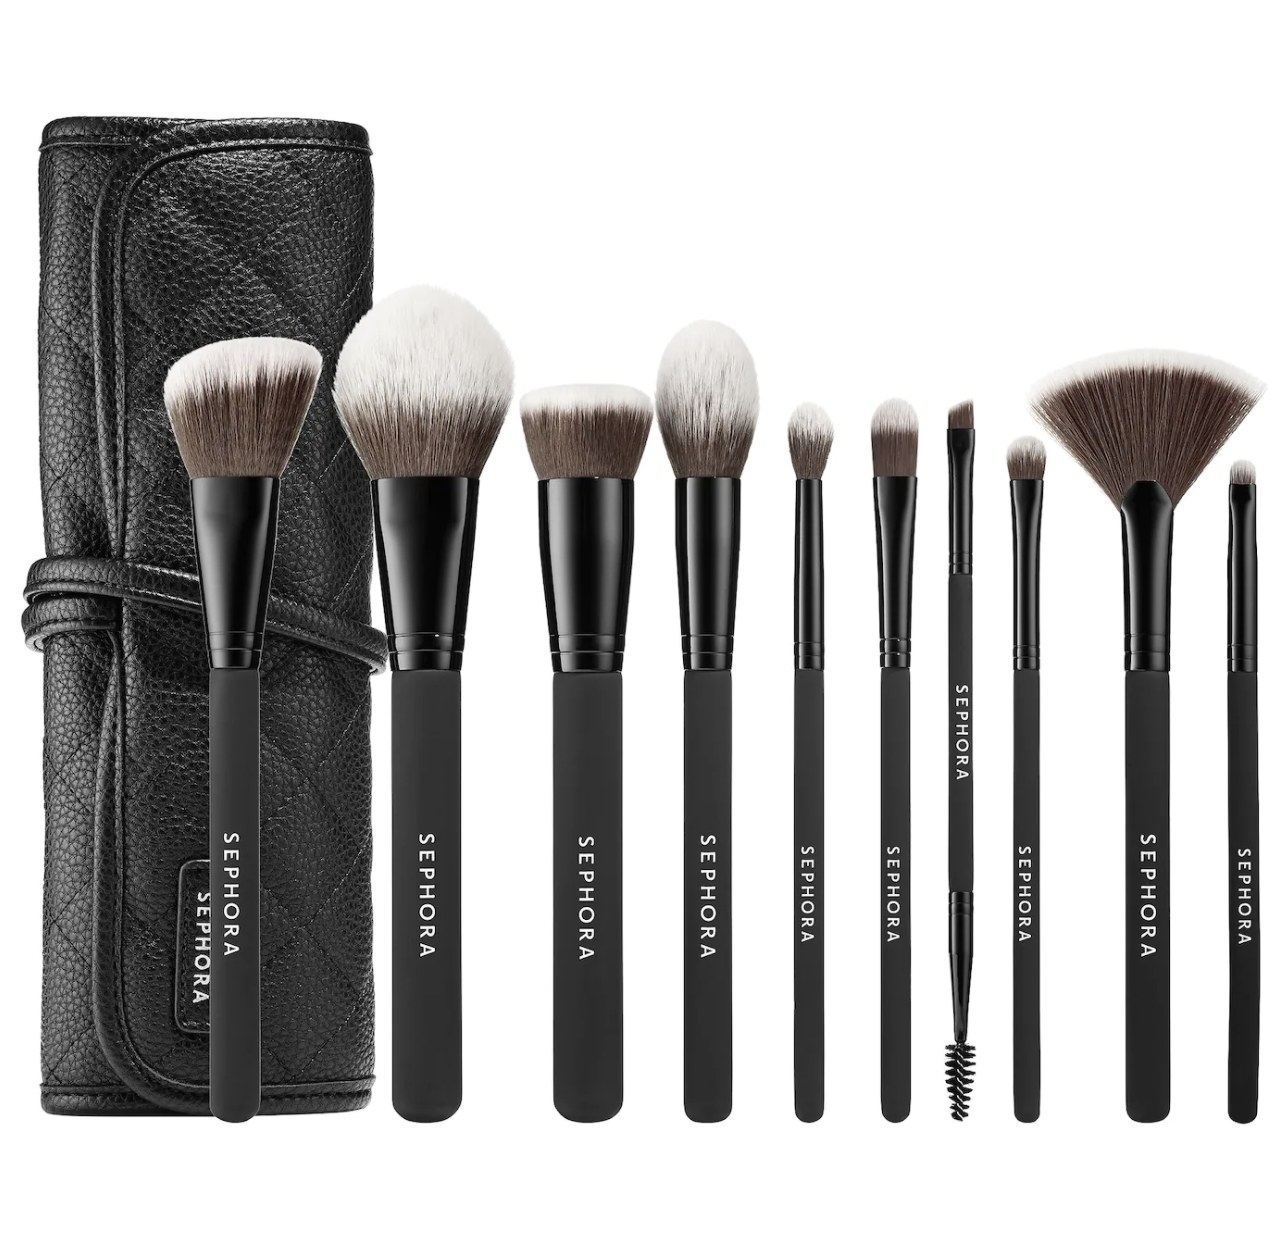 The 10 makeup brushes